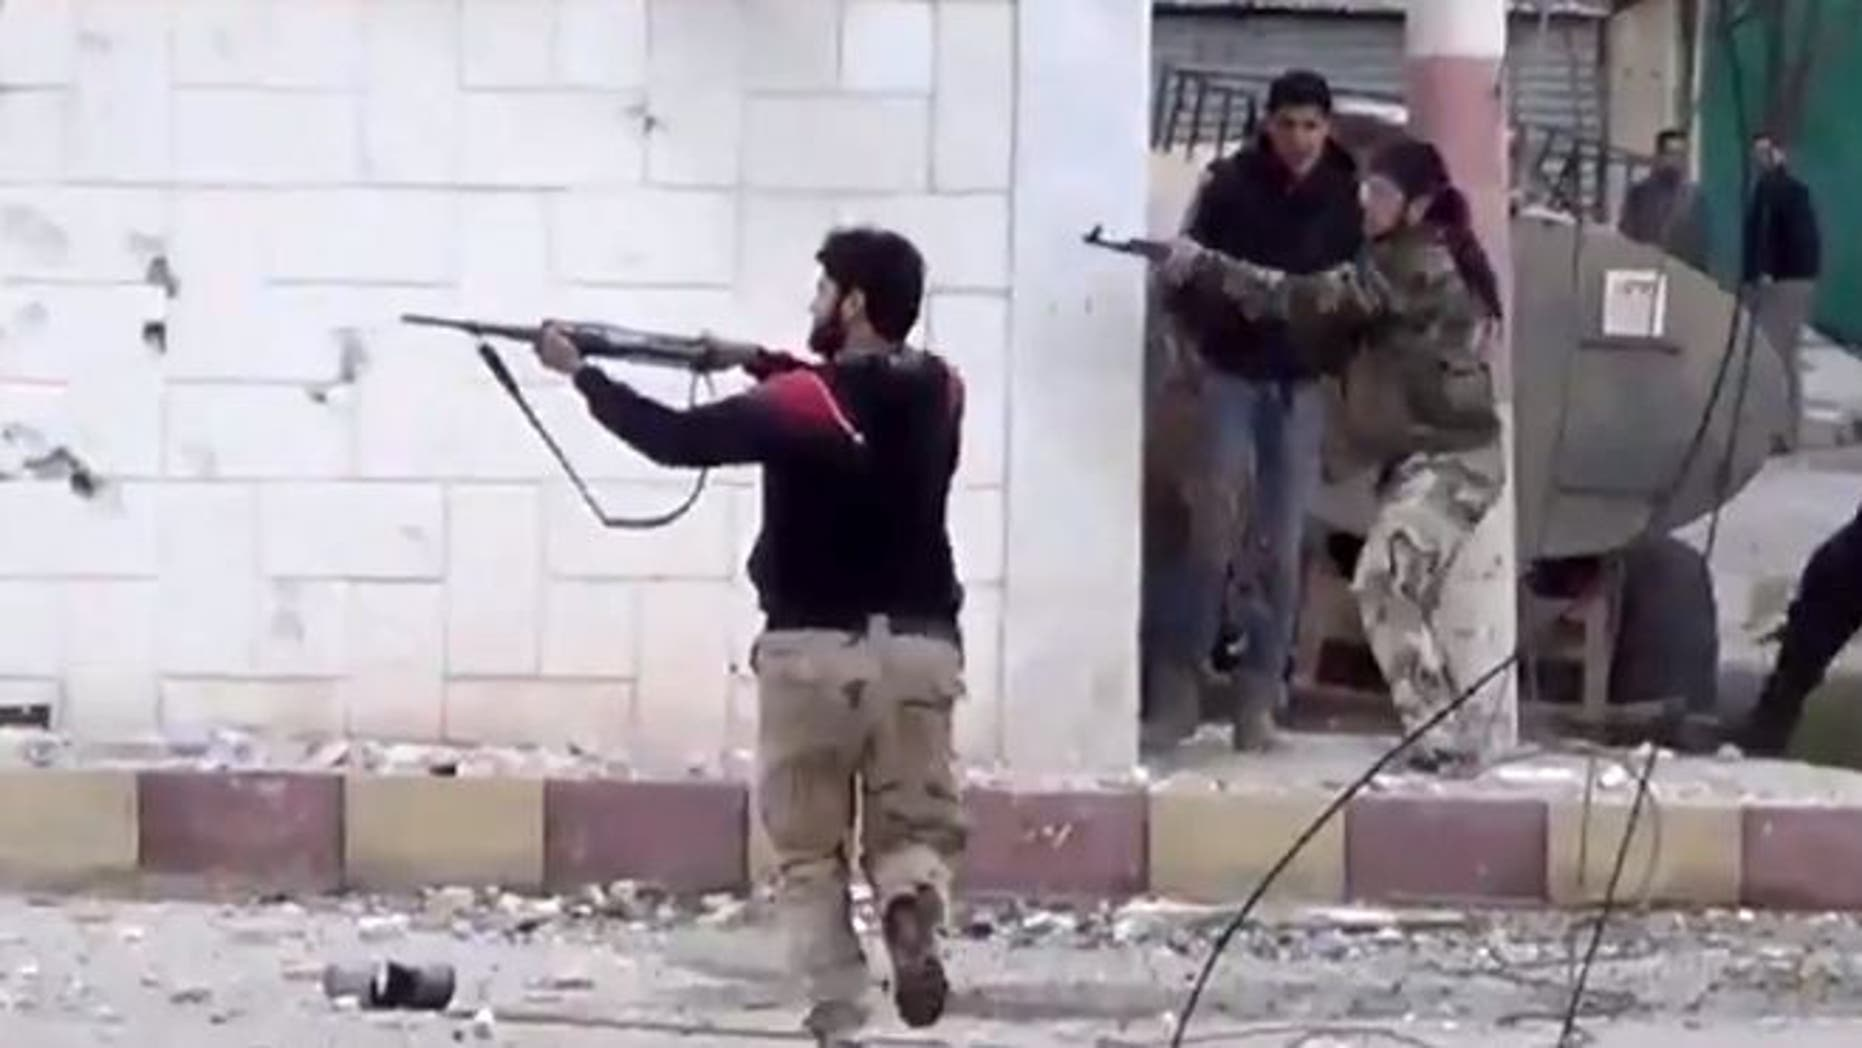 FILE: March 18, 2013: Free Syrian Army fighters fire at Syrian army soldiers during a fierce firefight in Daraa al-Balad, Syria.